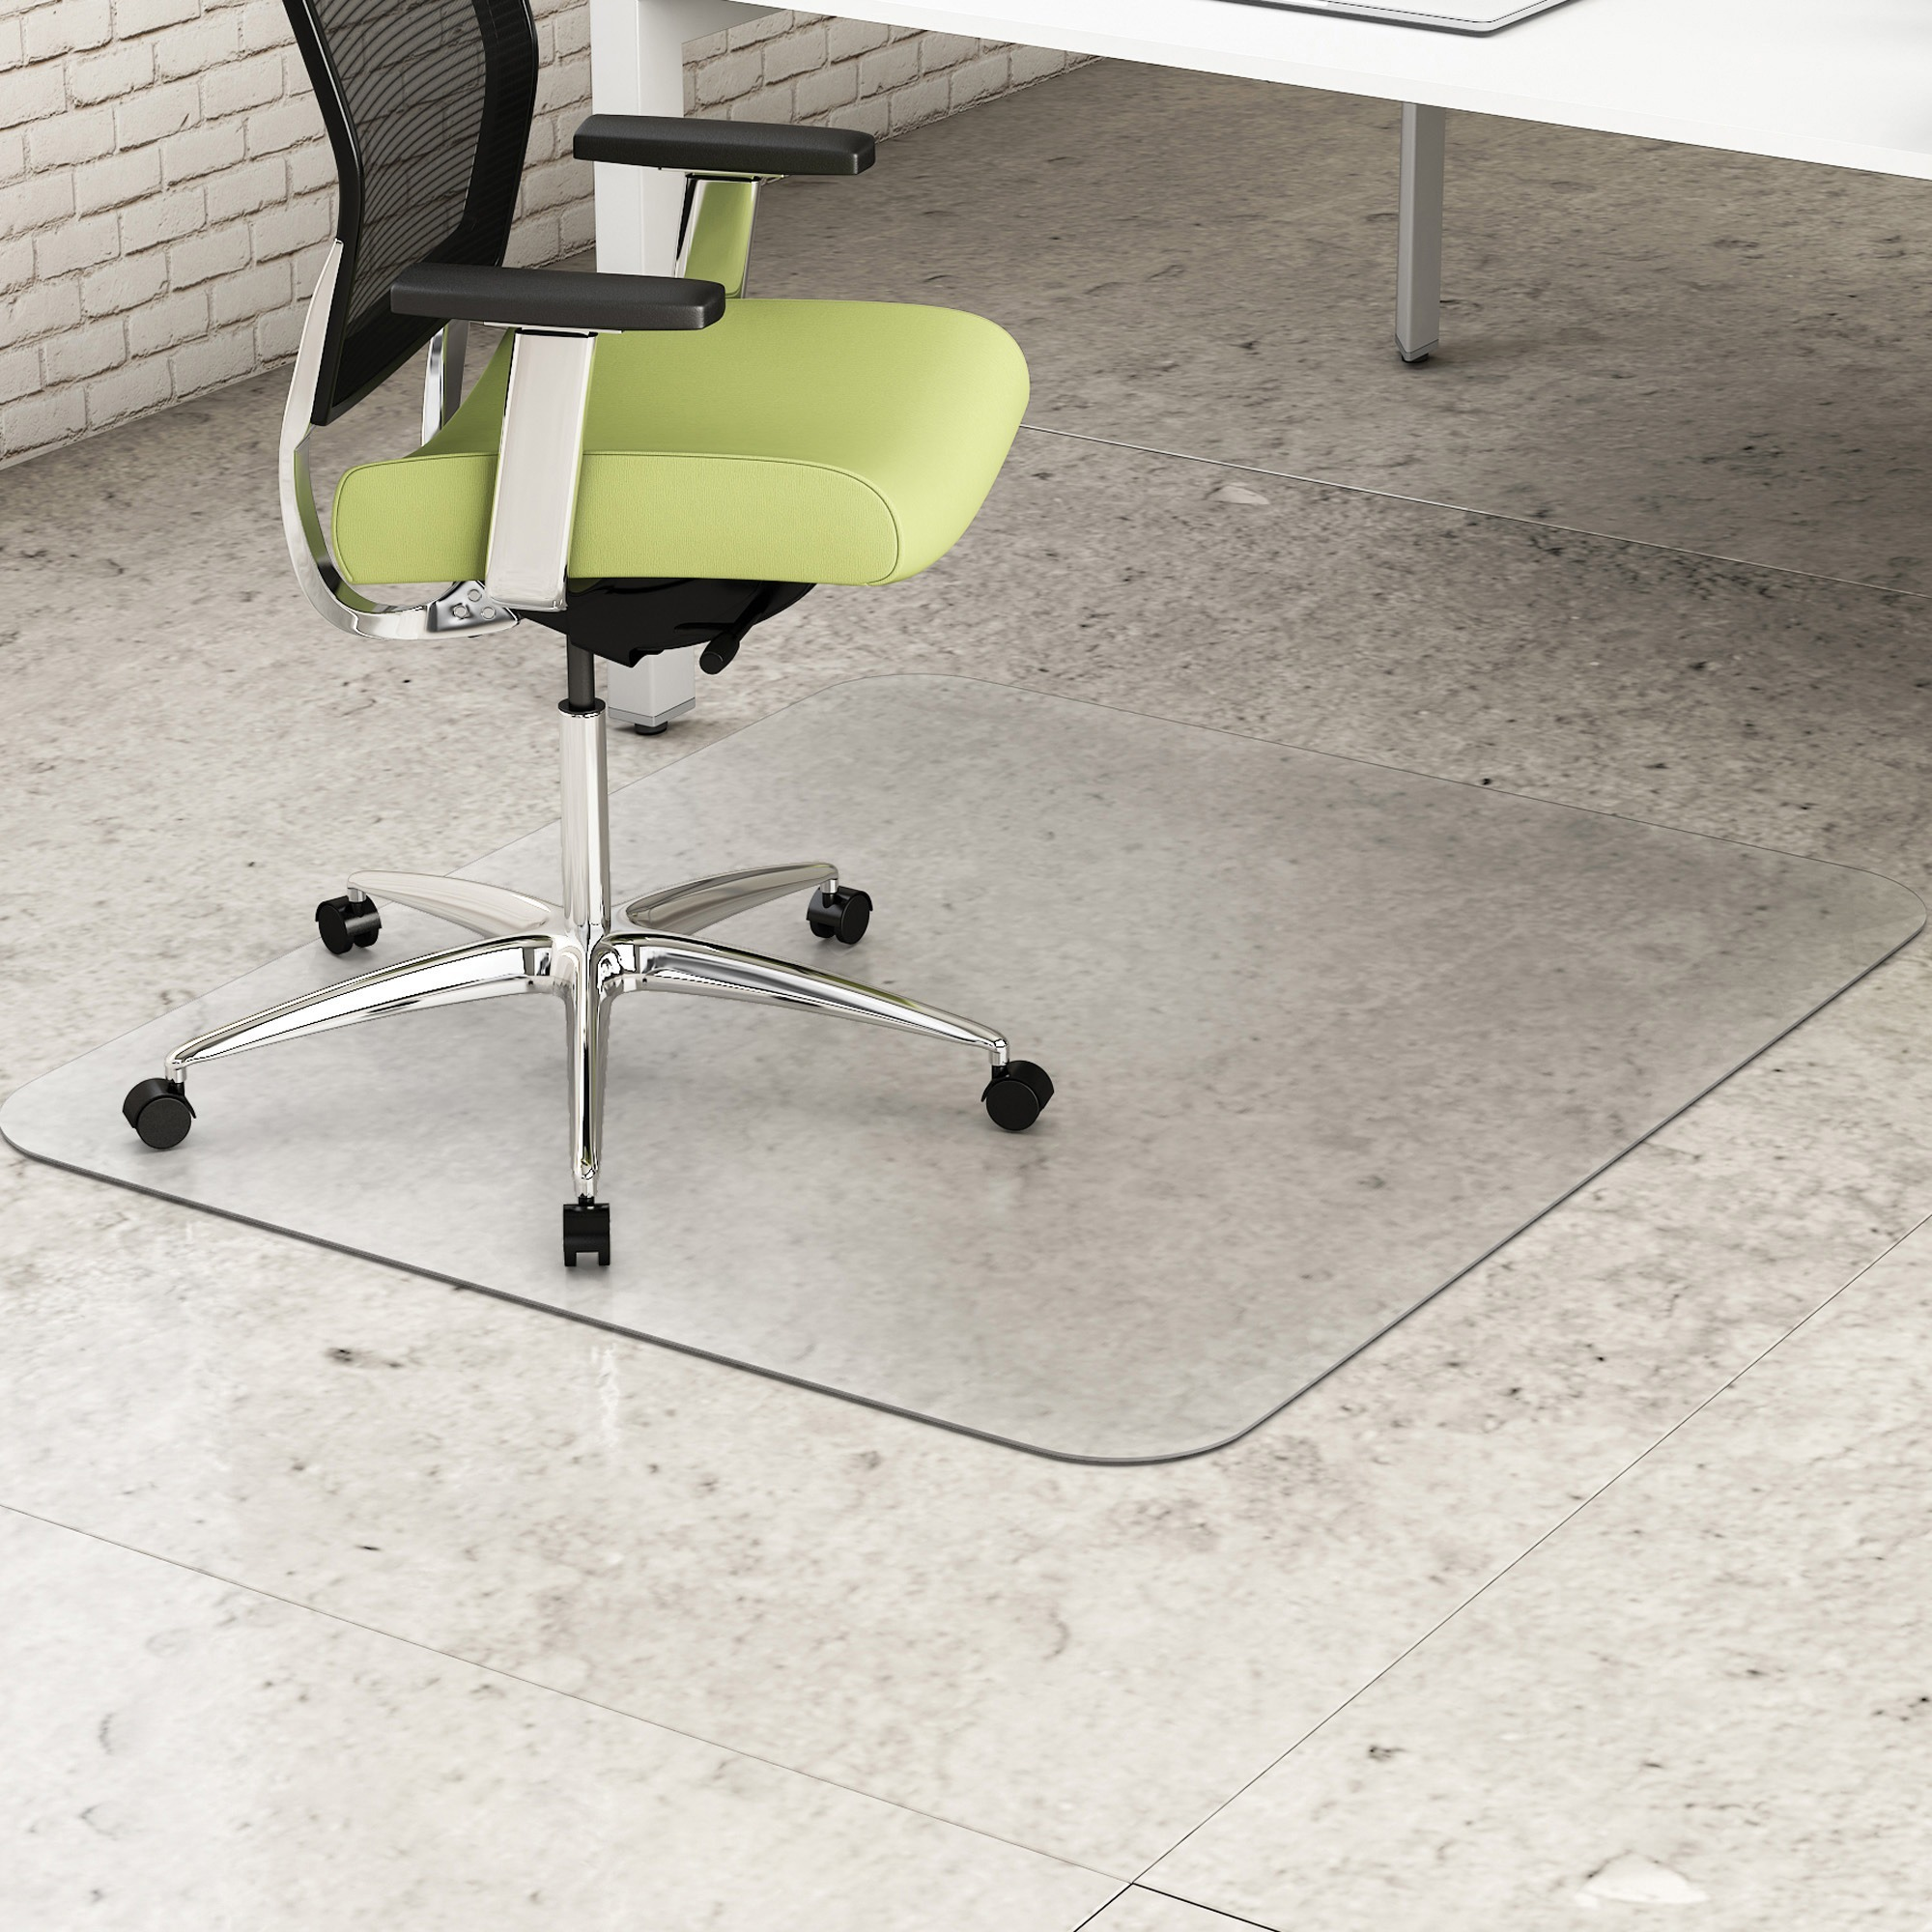 West coast office supplies furniture chairs chair mats deflecto hard floor environmat recycled chairmat hard floor wood floor tile floor 53 134620 mm length x 45 1143 mm width rectangle textured doublecrazyfo Images